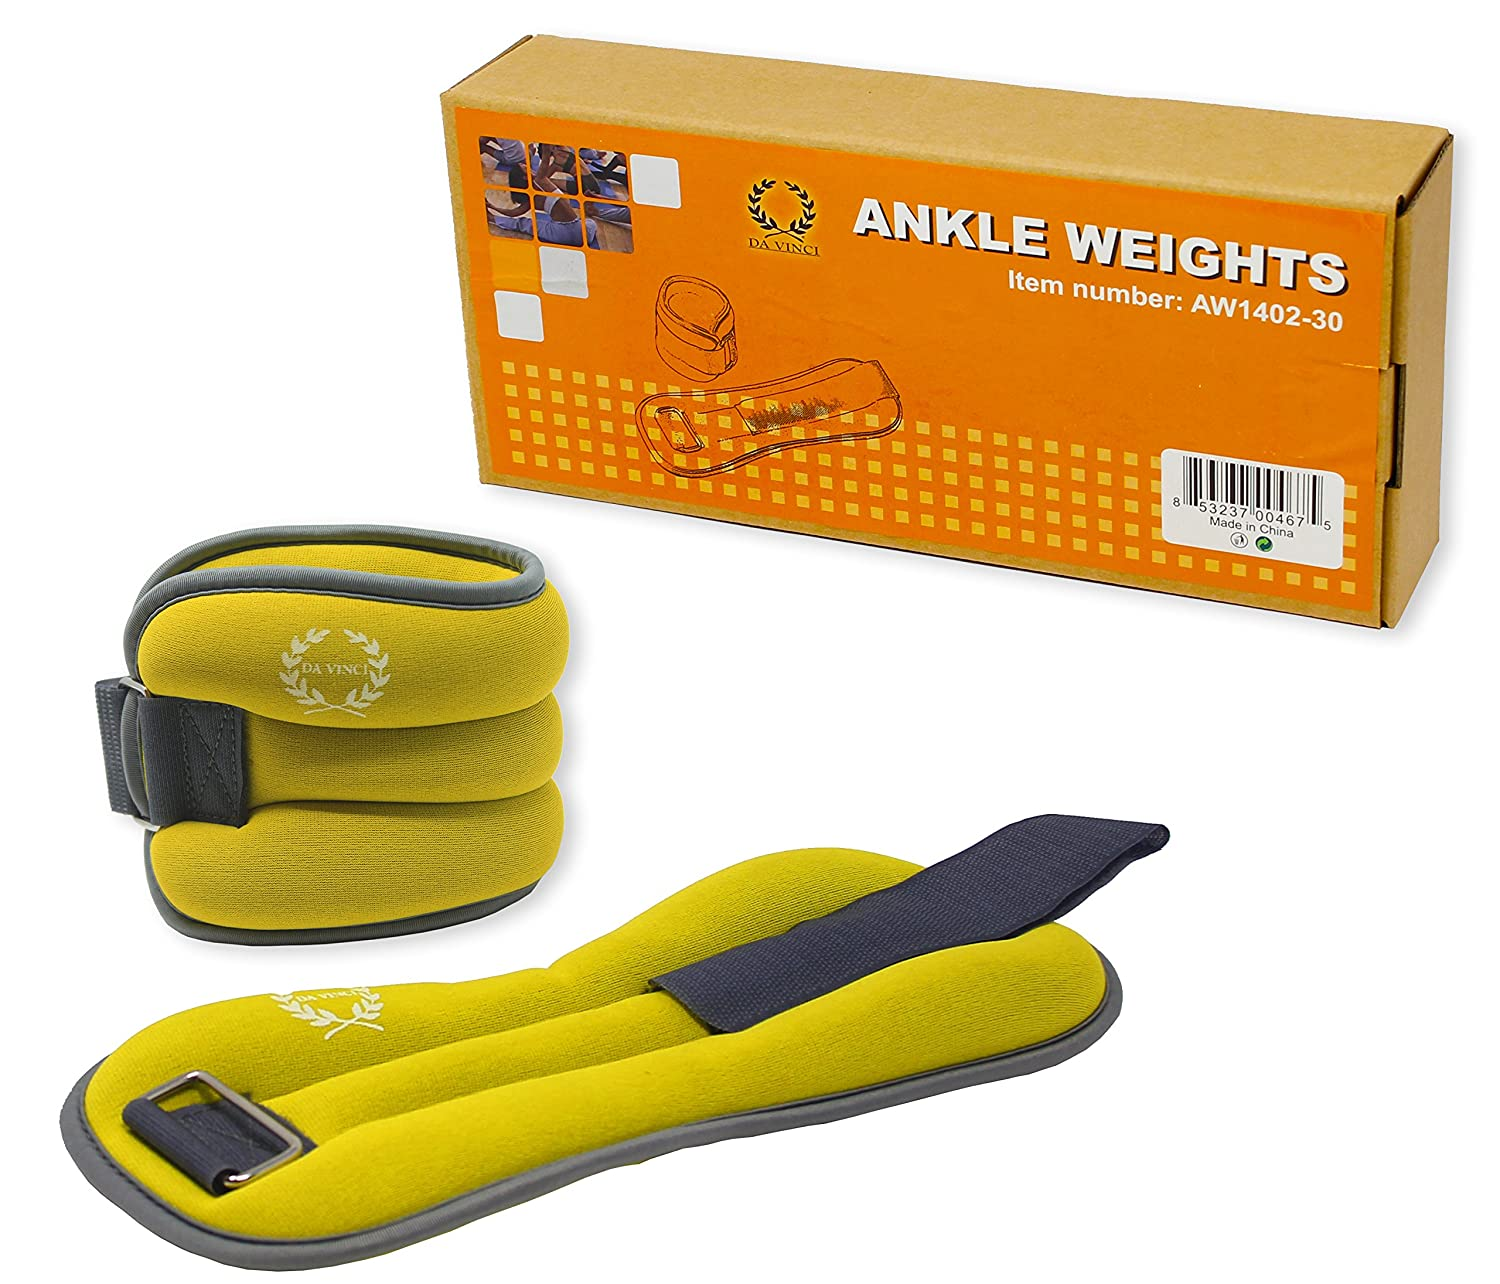 Da Vinci Adjustable Ankle or Wrist Weights Da Vinci Imports 2 to 10 lbs per Set Sold in Pairs of 1 to 5 lbs